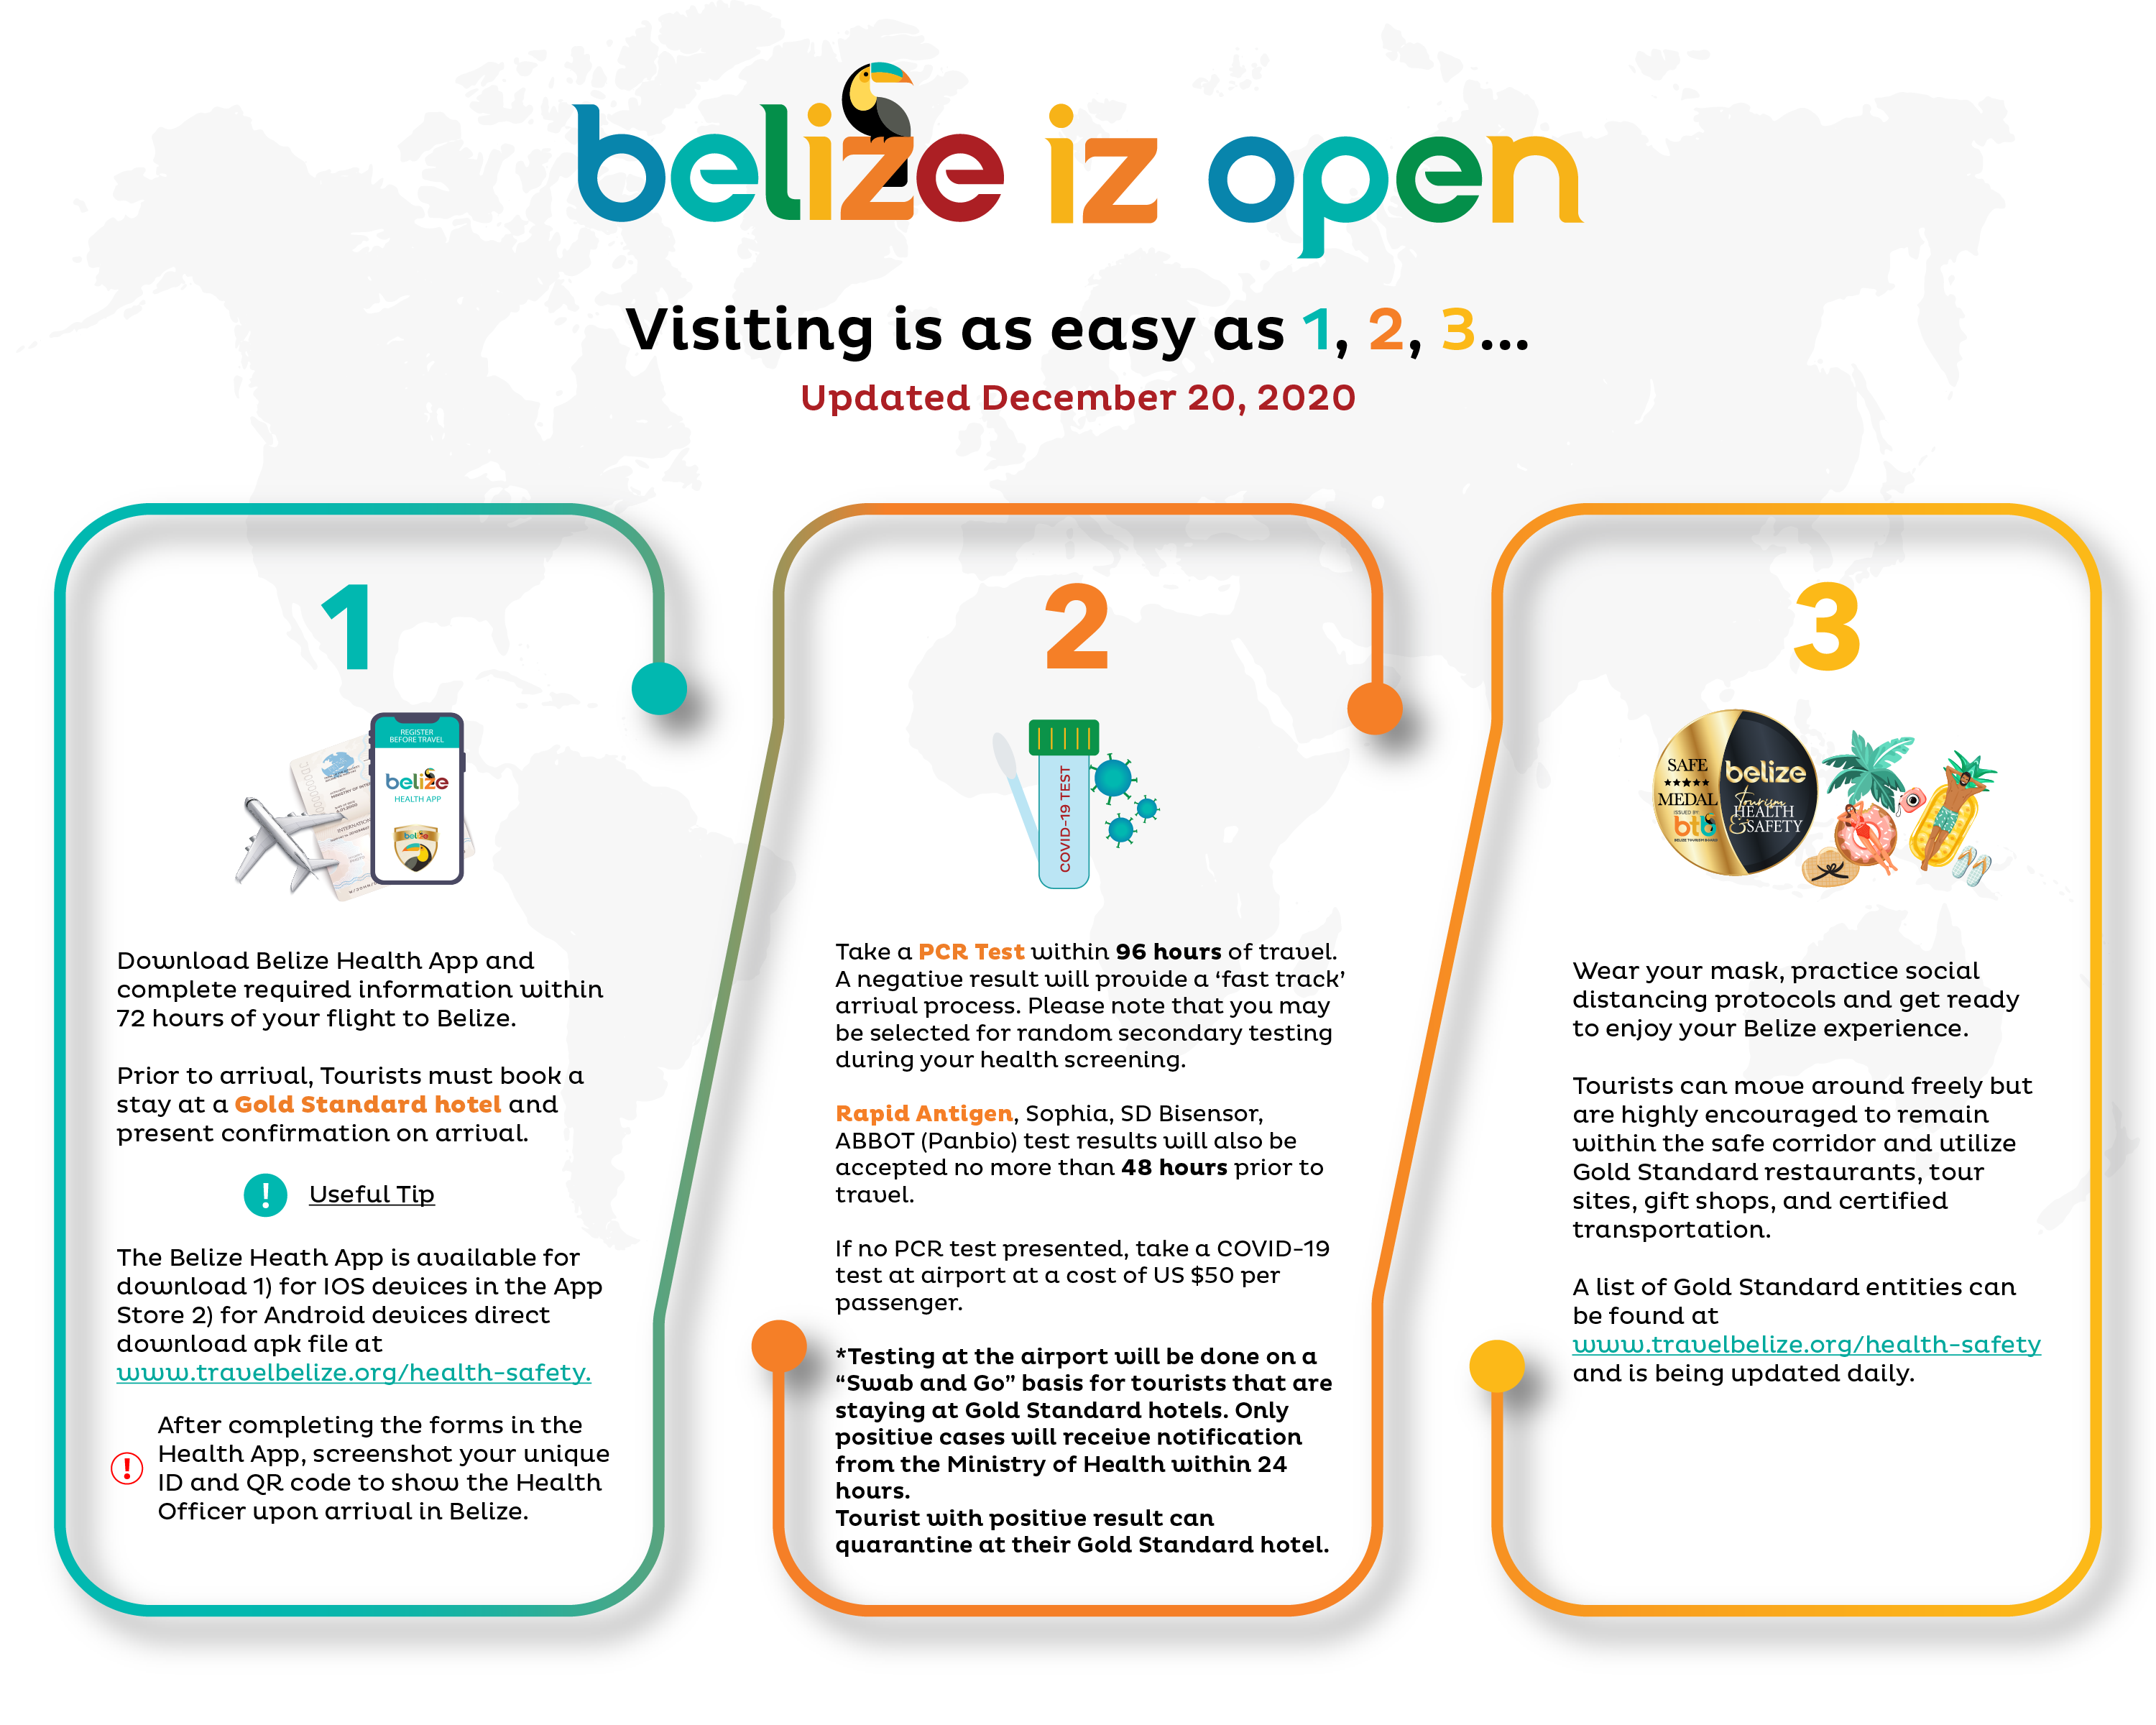 Belize Tourism Board graphic showing how easy it is to visit